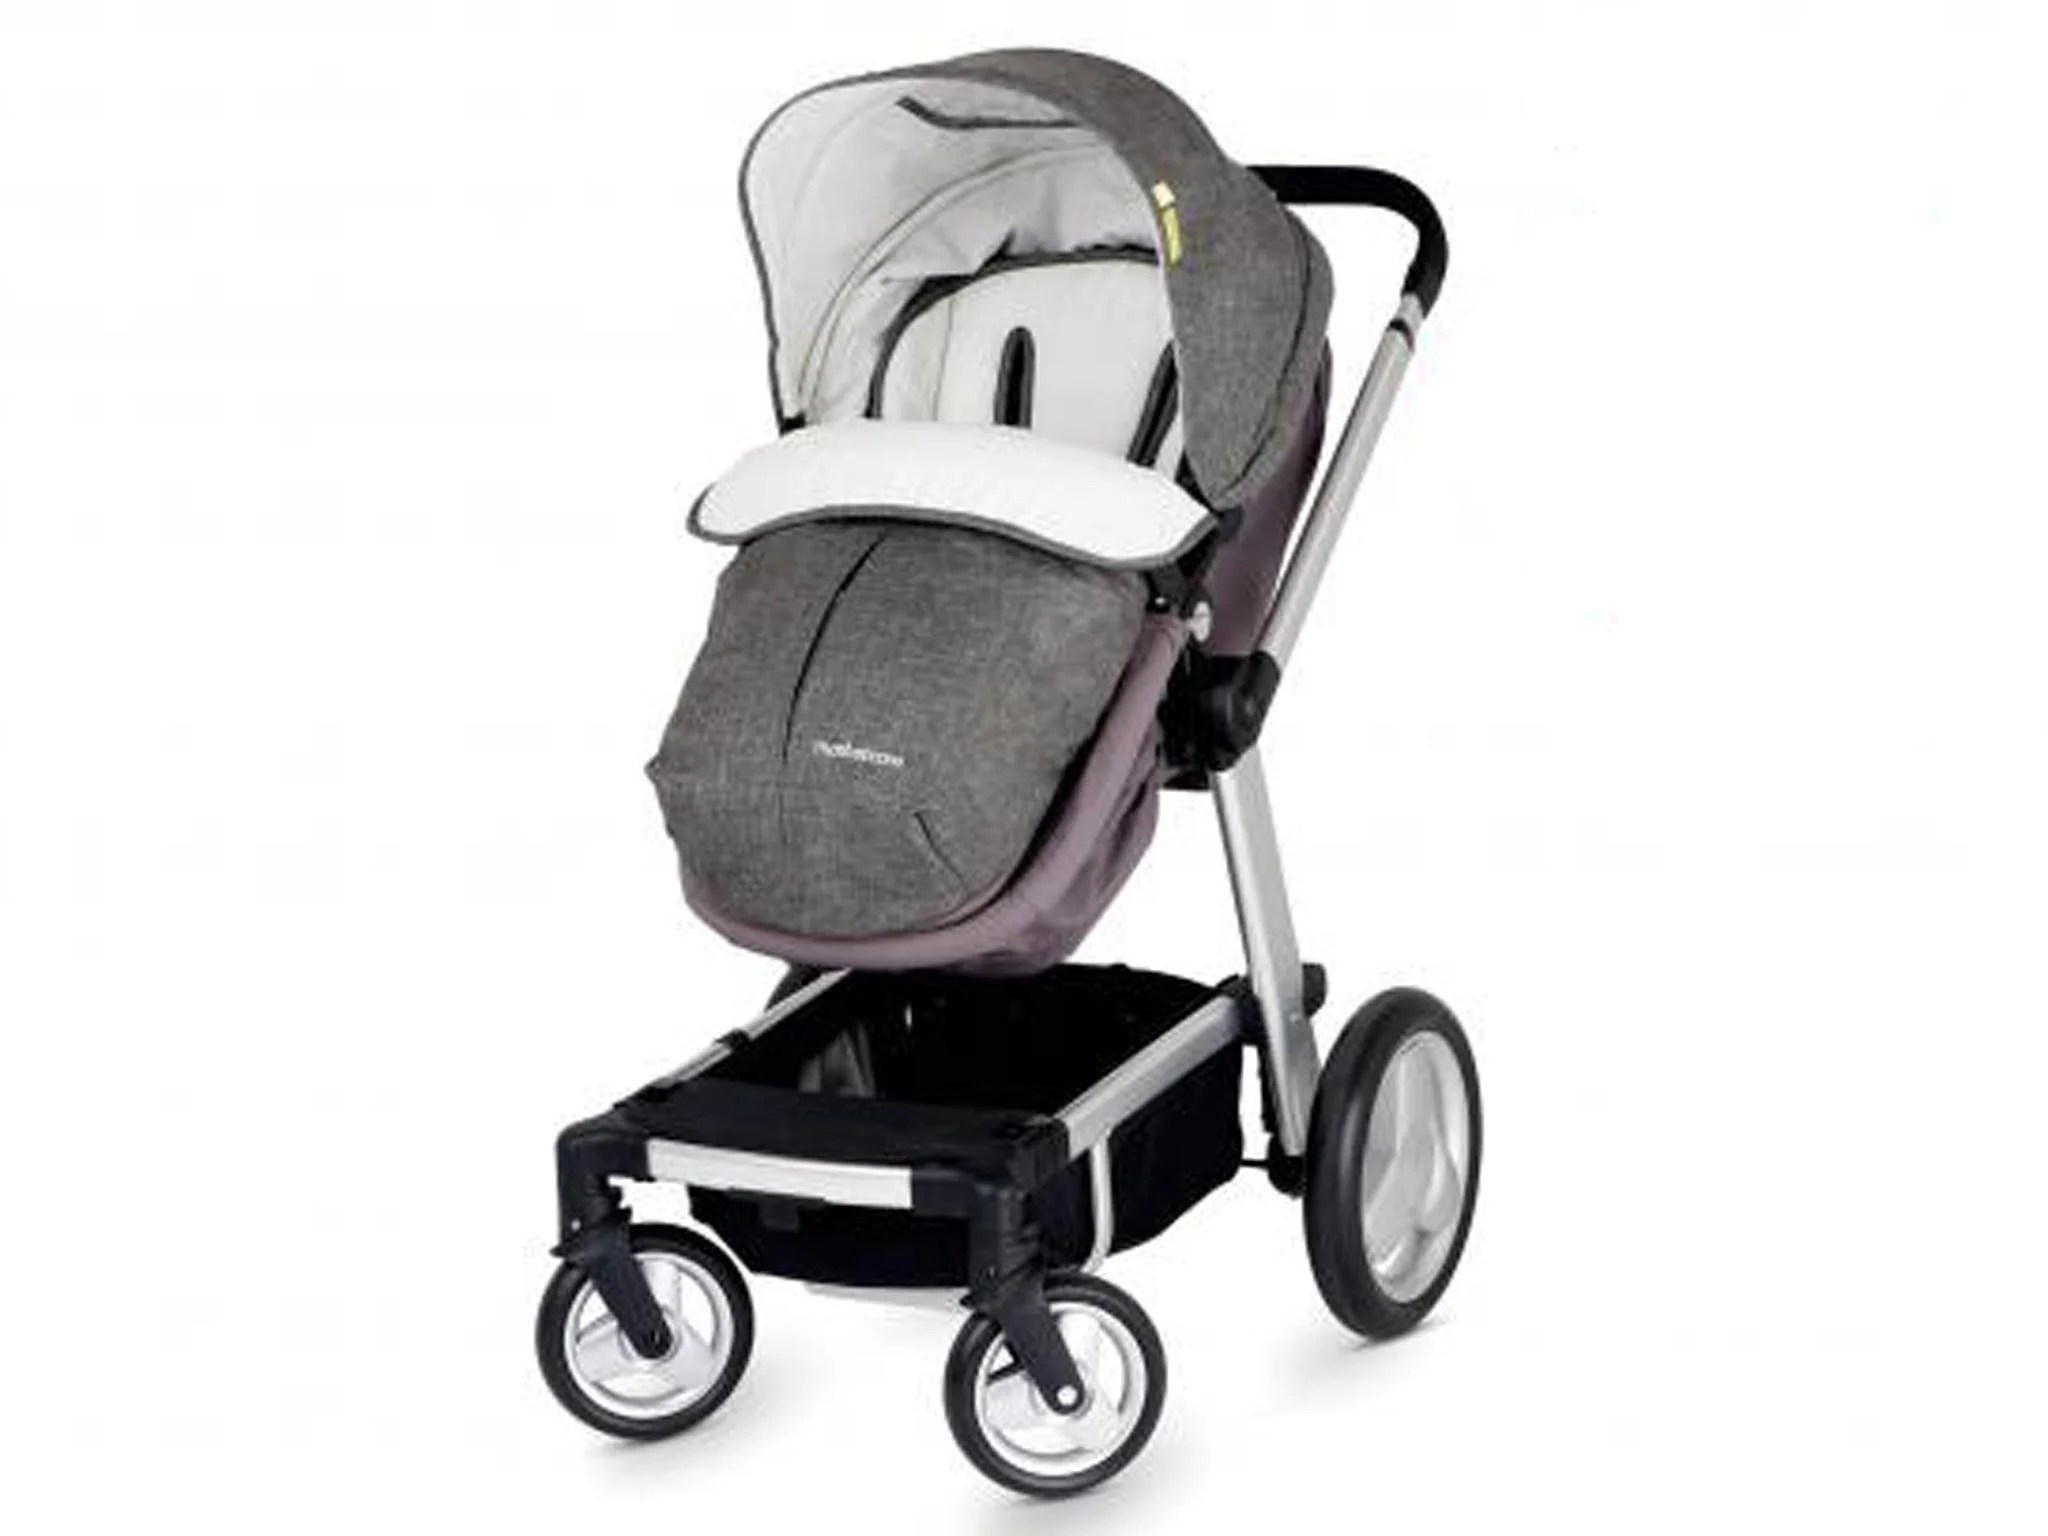 3 Wheel Buggy Vs 4 Wheel Pushchairs Buying Guide What To Consider Before You Invest